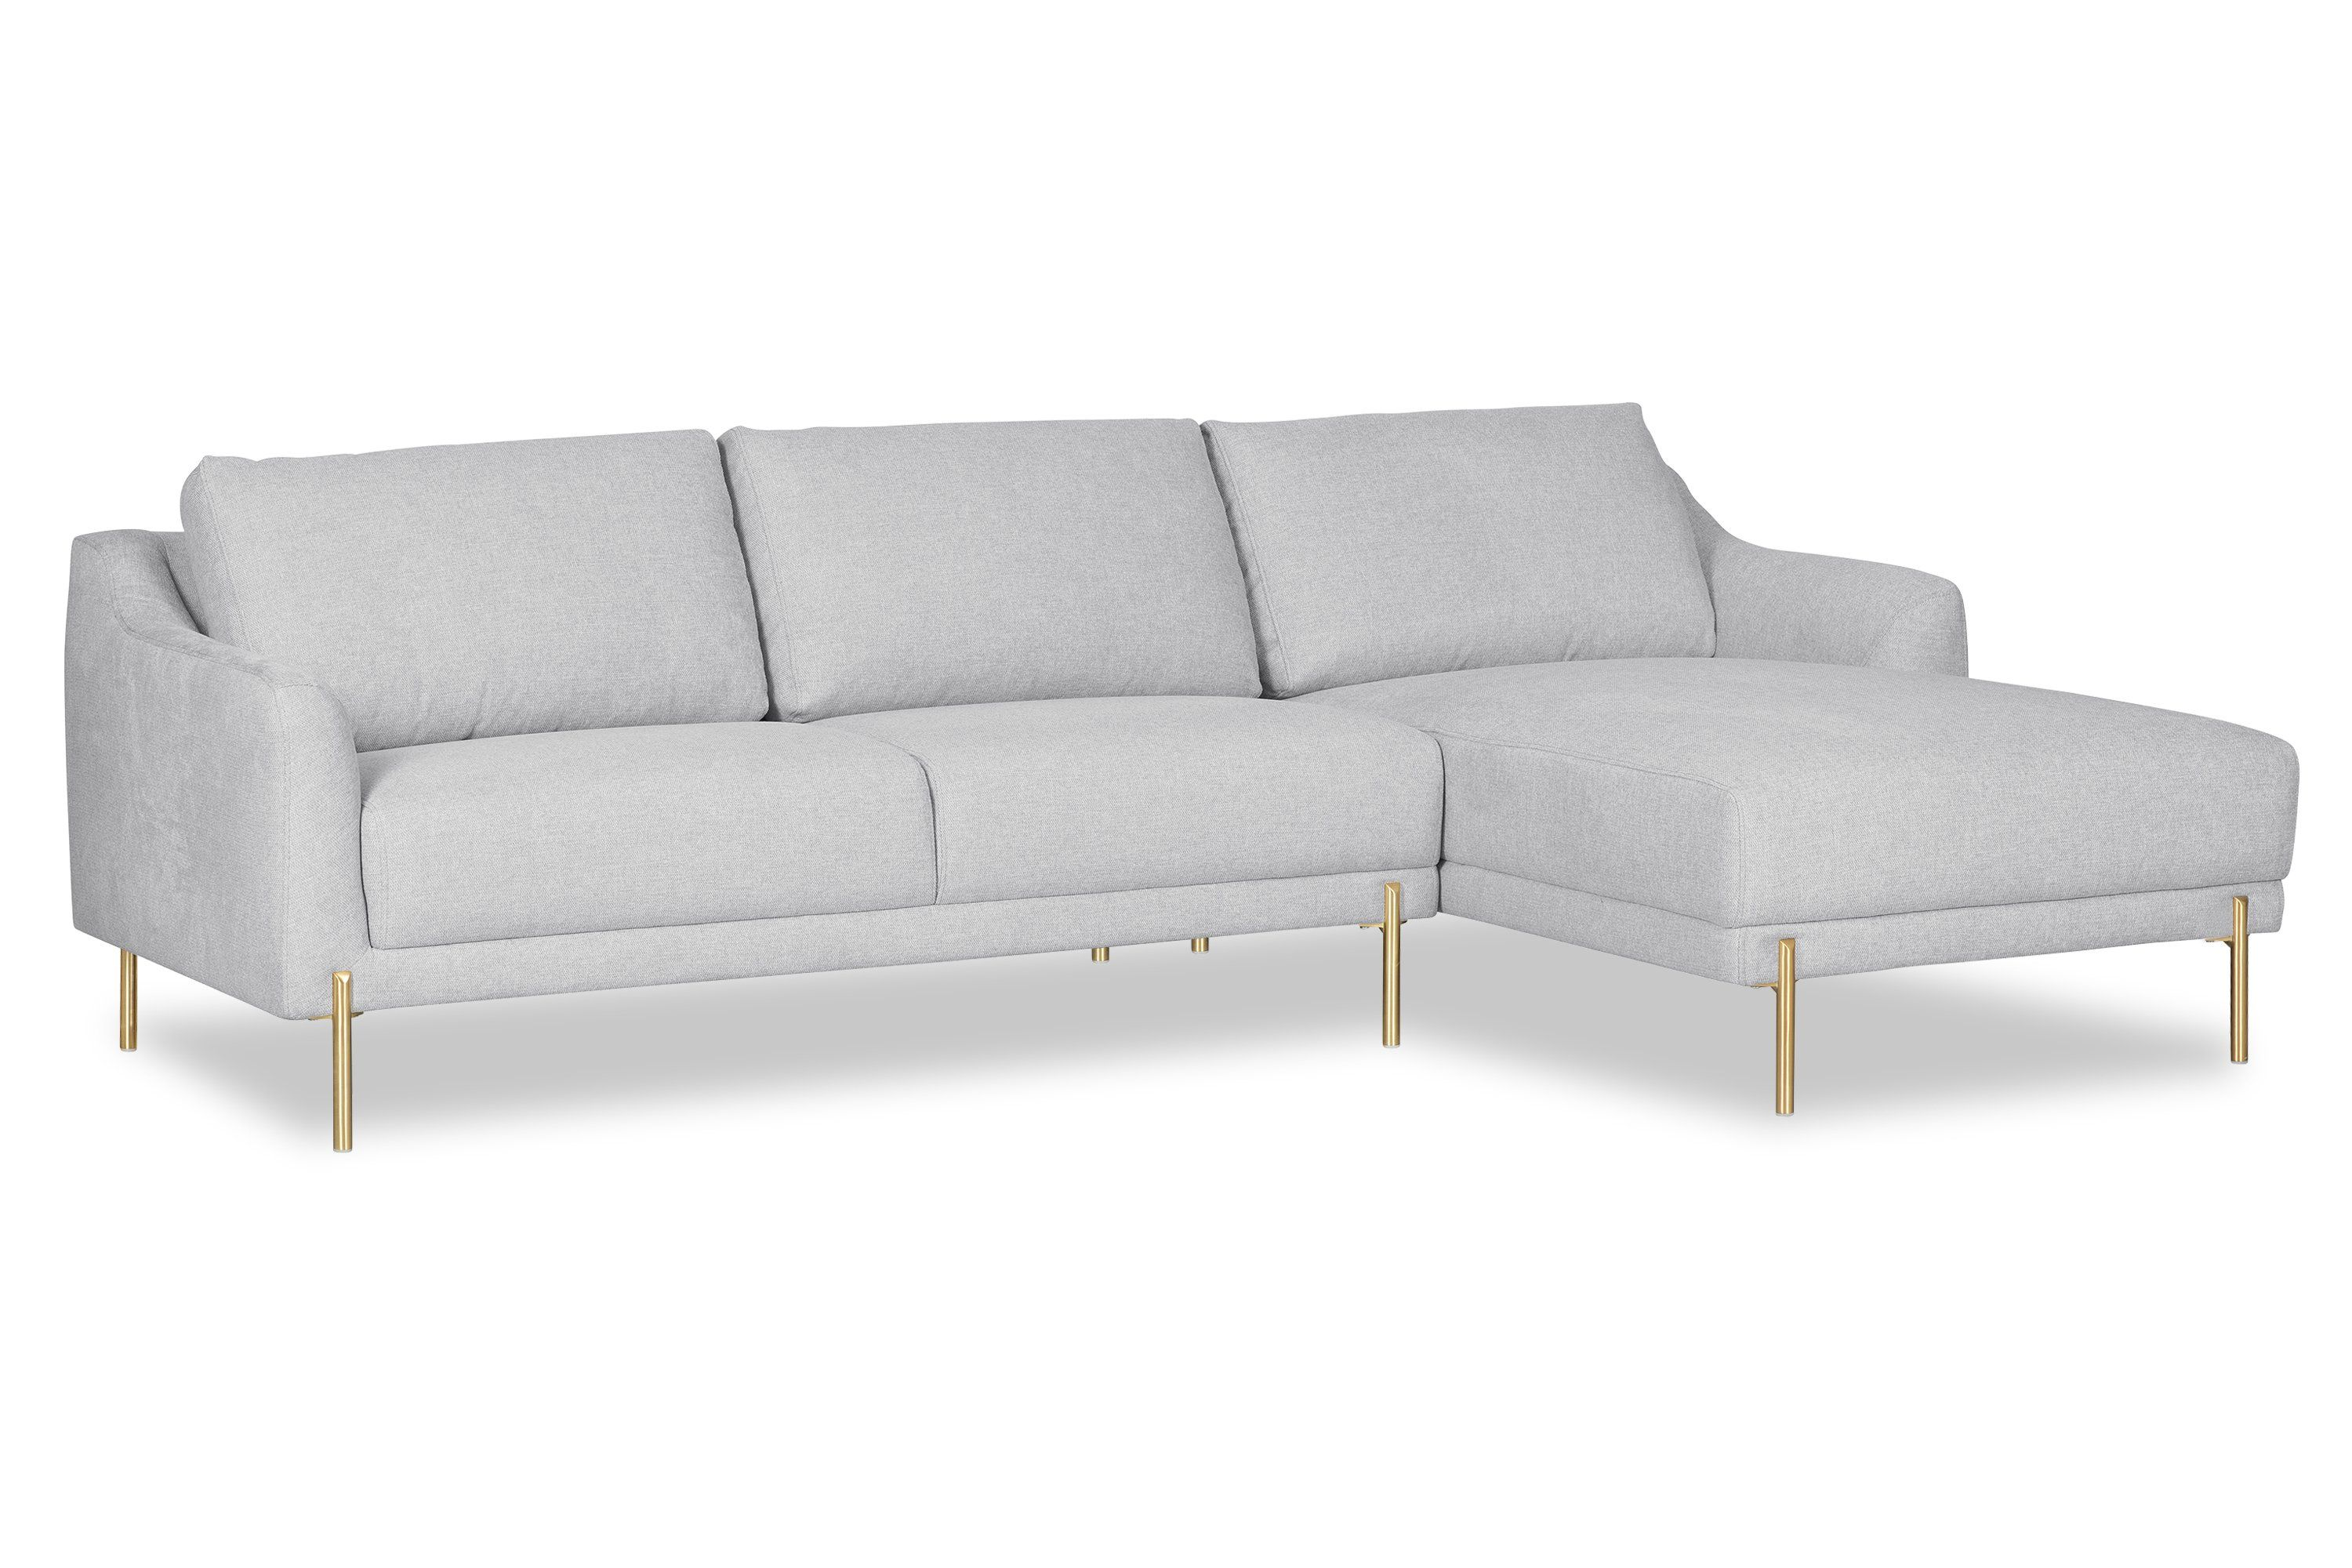 Lissie Right Facing Sectional Sofa In 2020 Sectional Sofa Sectional Sofa